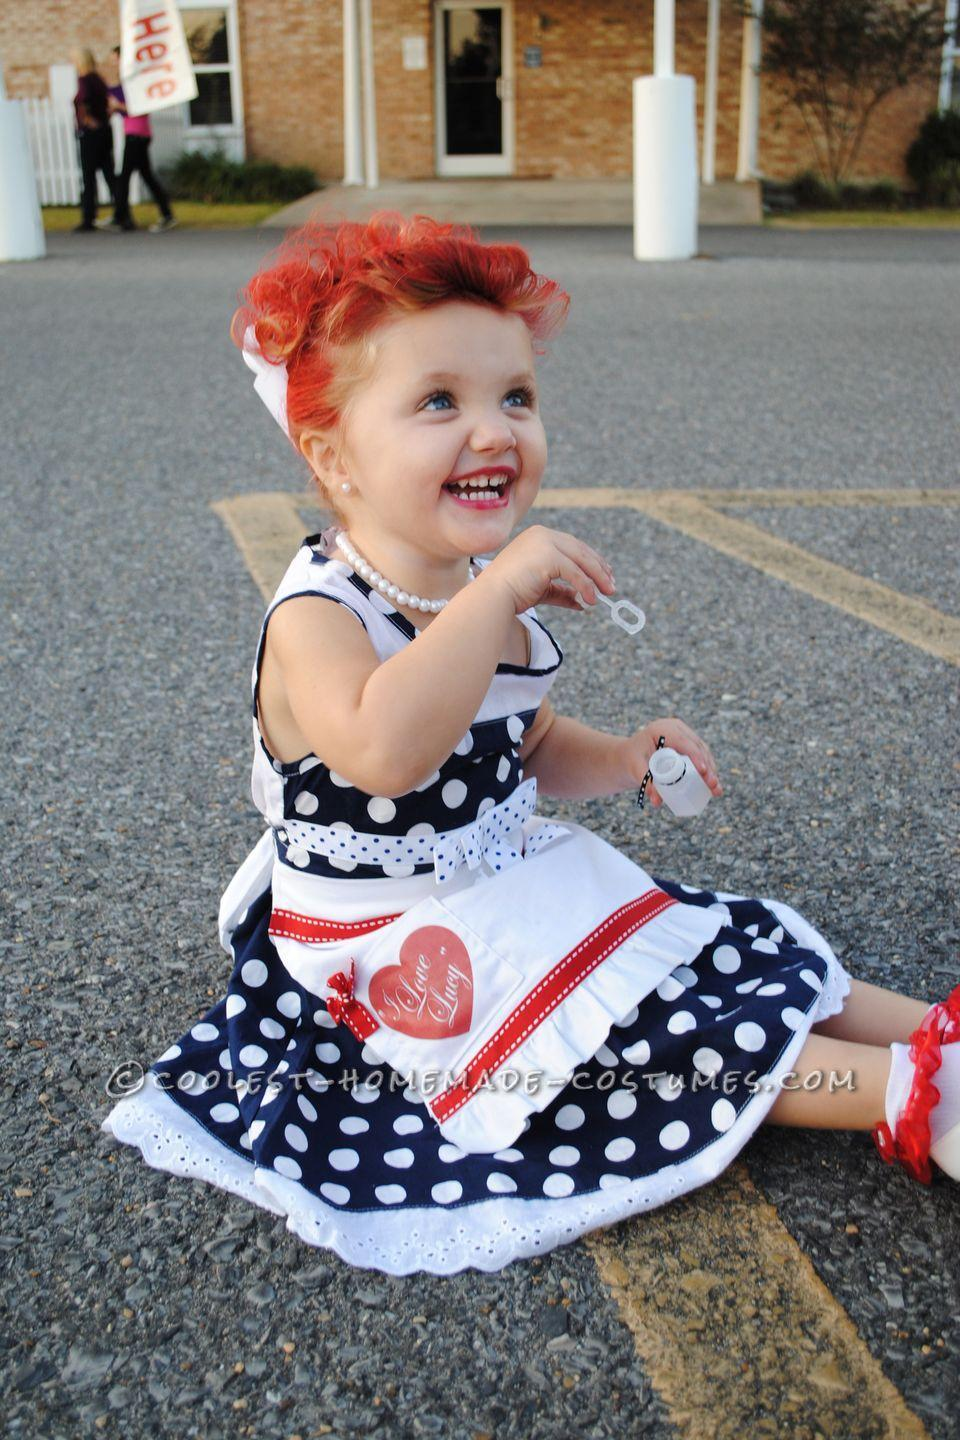 """<p><span>All you need for <em>I Love Lucy</em> costume is to find a Ricky!</span></p><p><strong>Get the tutorial at <a href=""""http://www.coolest-homemade-costumes.com/adorable-i-love-lucy-homemade-costume-for-a-toddler/"""" rel=""""nofollow noopener"""" target=""""_blank"""" data-ylk=""""slk:Coolest Homemade Costumes"""" class=""""link rapid-noclick-resp"""">Coolest Homemade Costumes</a>.</strong><br></p><p><strong><a class=""""link rapid-noclick-resp"""" href=""""https://www.amazon.com/Weixinbuy-Girls-Chiffion-Sundress-Bowknot/dp/B00M51QCSQ/?tag=syn-yahoo-20&ascsubtag=%5Bartid%7C10050.g.4975%5Bsrc%7Cyahoo-us"""" rel=""""nofollow noopener"""" target=""""_blank"""" data-ylk=""""slk:SHOP POLKA DOT DRESS"""">SHOP POLKA DOT DRESS</a></strong></p>"""